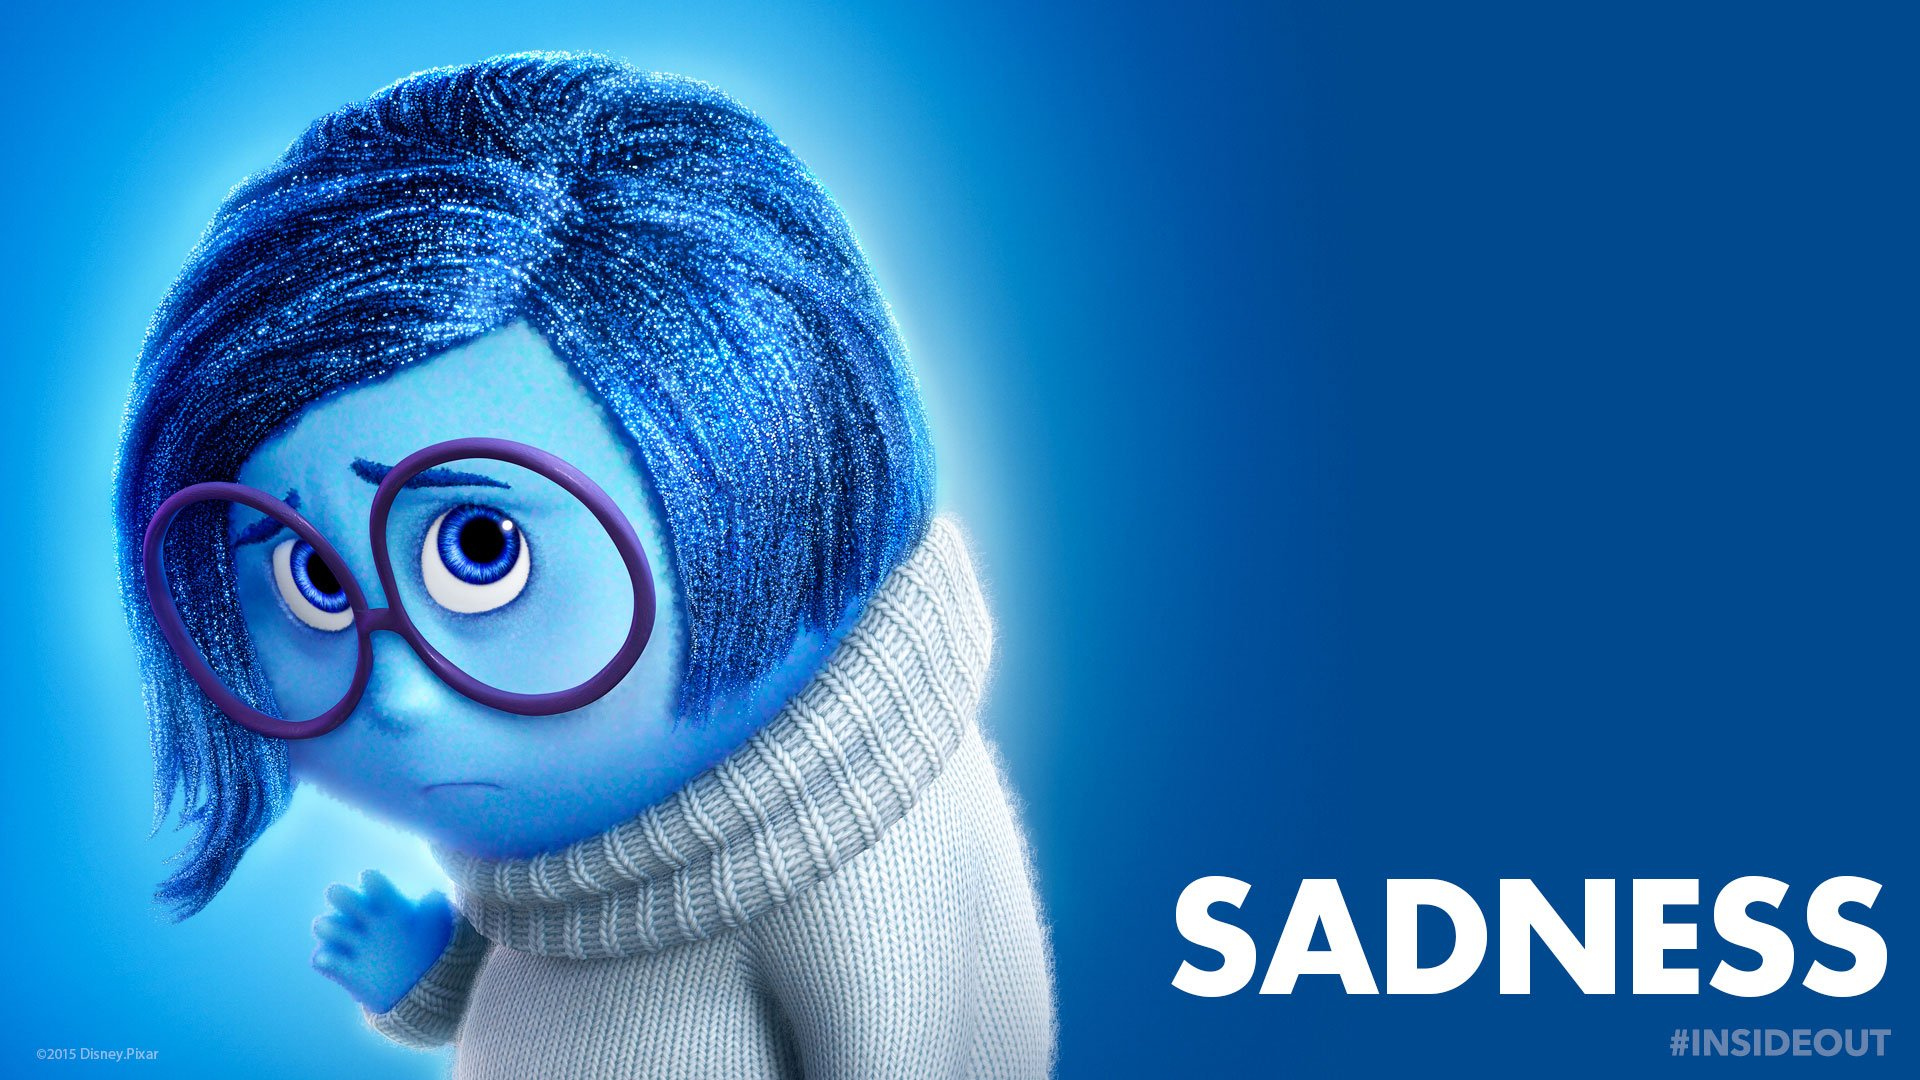 Inside Out Sadness Wallpaper backgrounds 2015 1920x1080